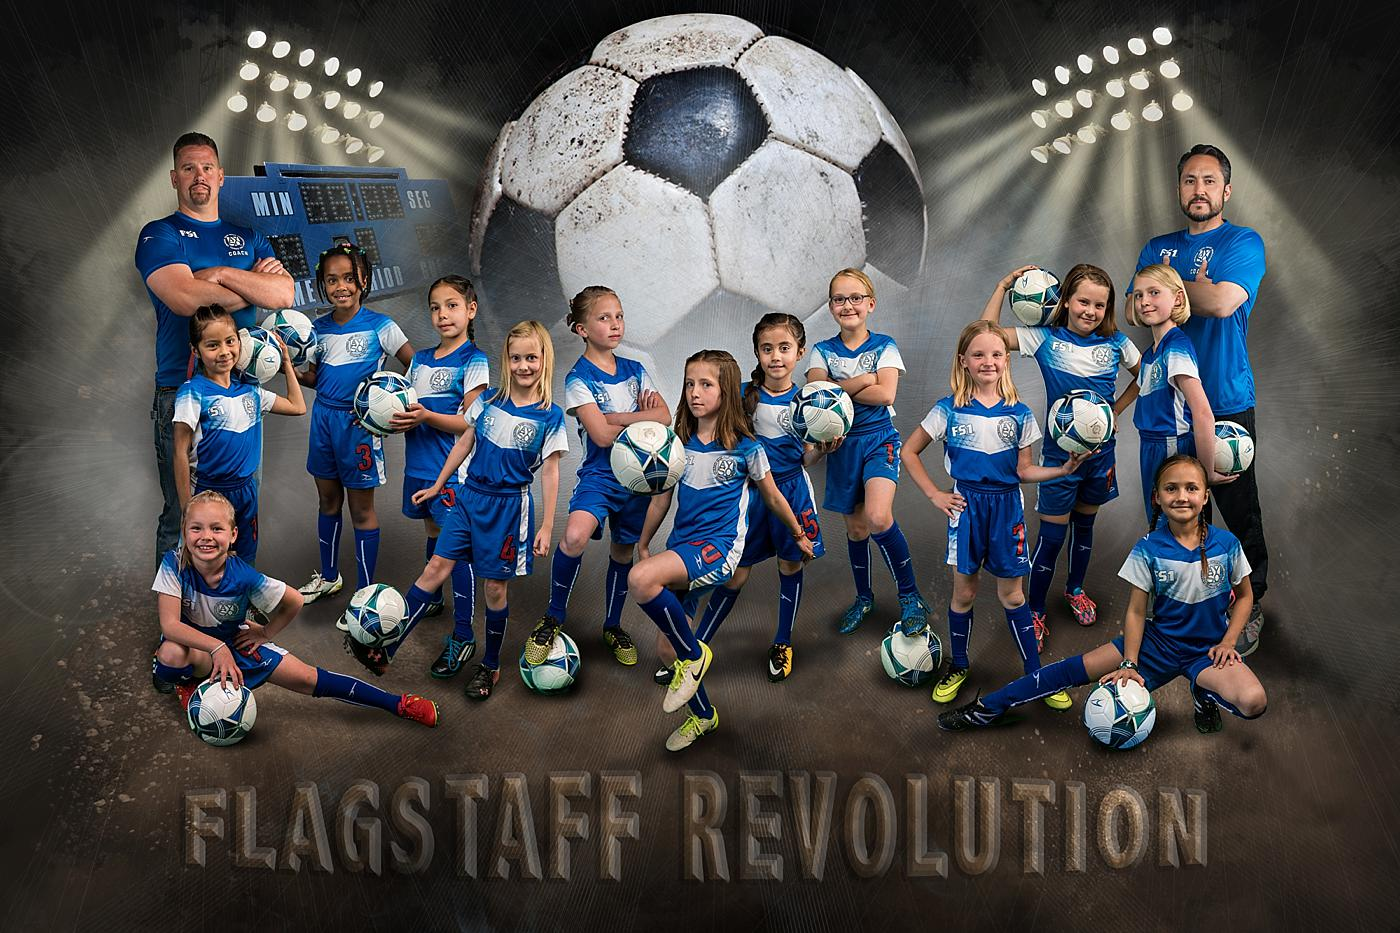 ayso-girls-soccer-photos-flagstaff-2018ther2studio